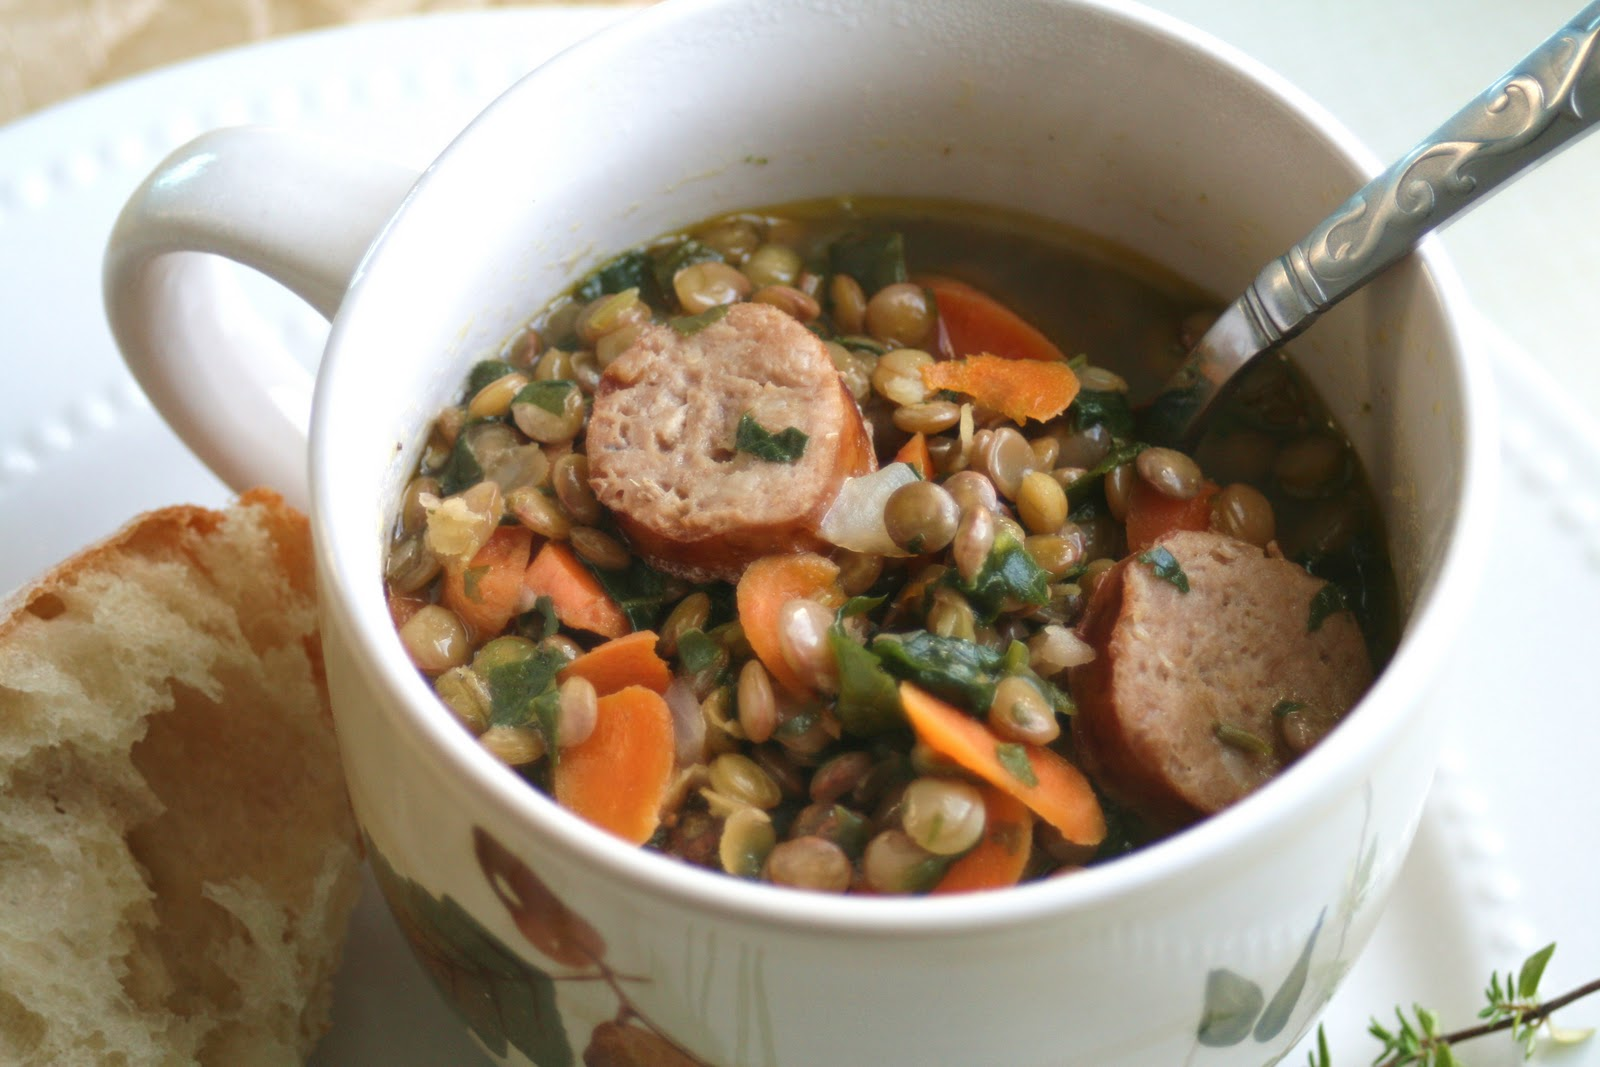 I Thee Cook: Lentil Stew with Sausage and Spinach